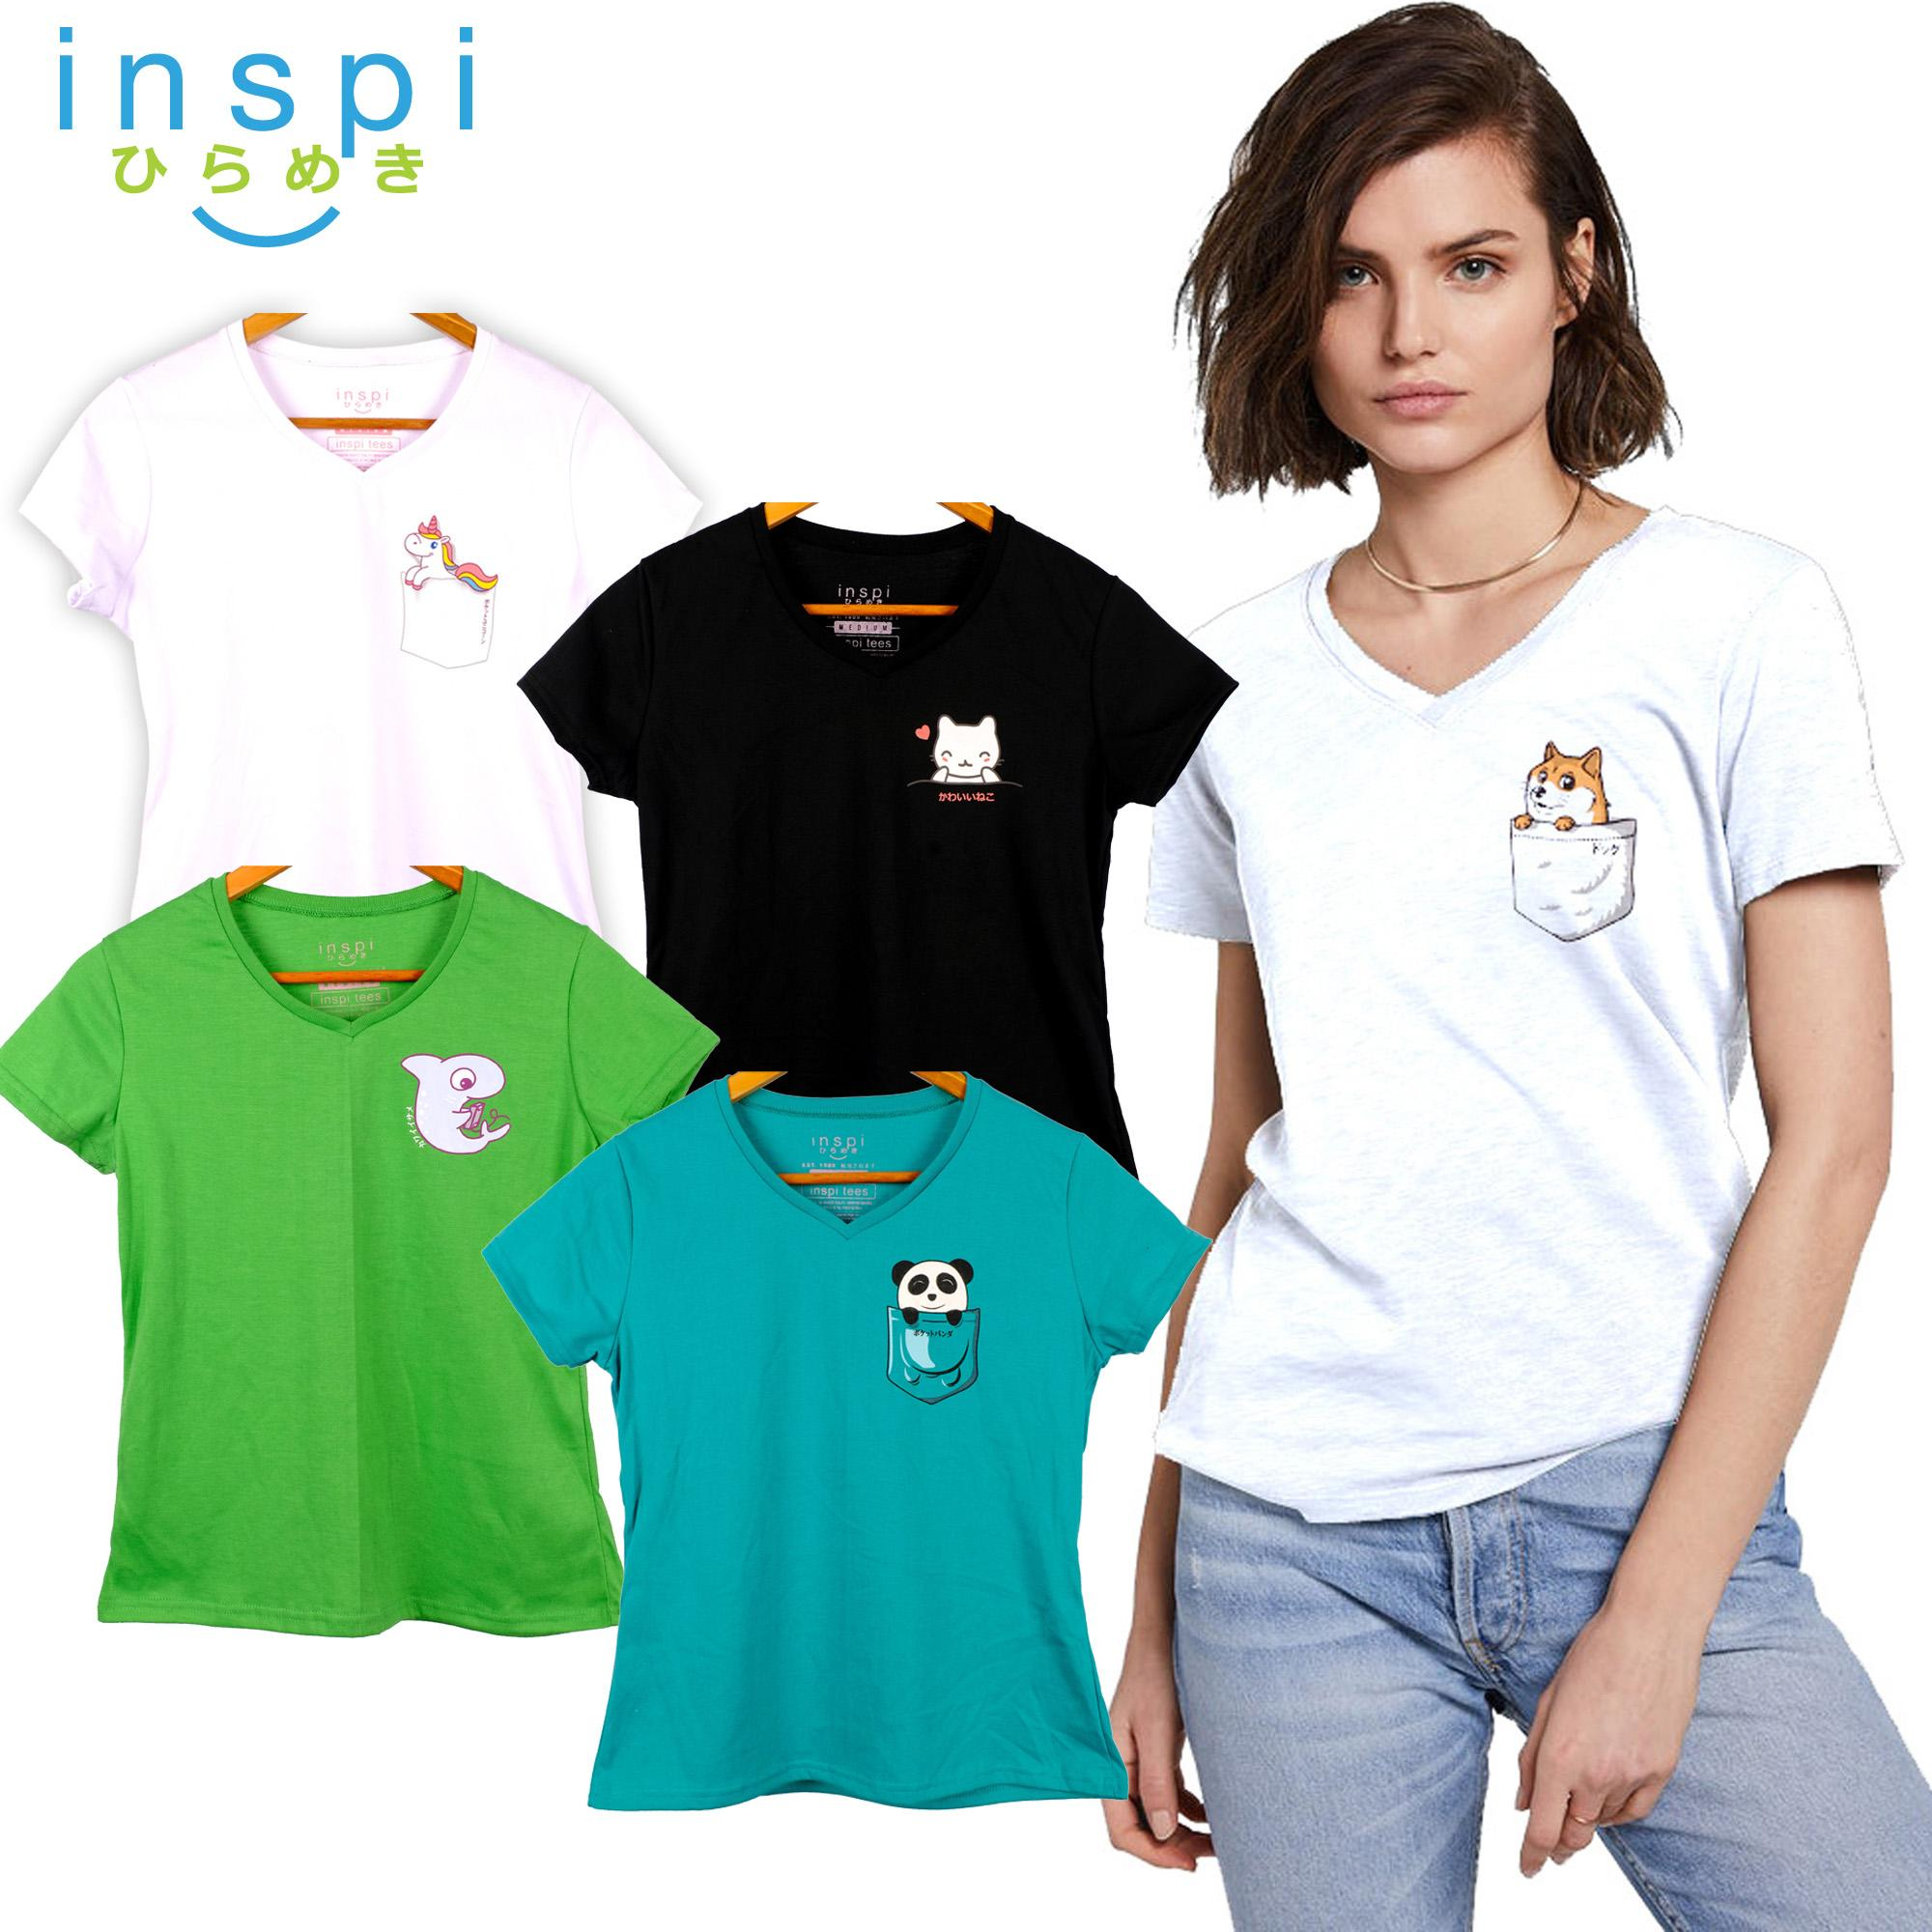 59d3888c1 INSPI Tees Ladies Semi Fit Pocket Friends Collection tshirt printed graphic tee  t shirt shirts tshirts